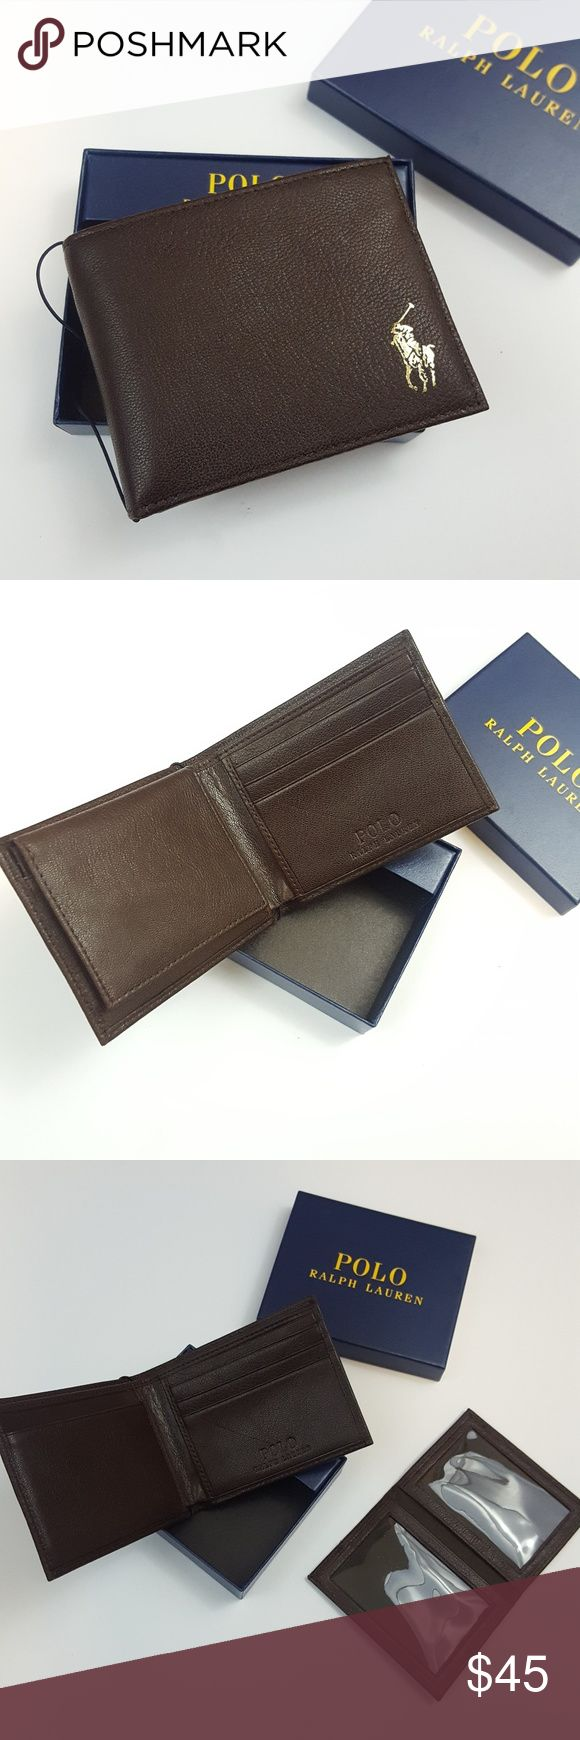 ♂ NWT POLO RALPH LAUREN Bifold Leather Wallet 100% AUTHENTIC  COLOR: Dark Brown  Interior featured: 3 credit card slots 3 slip pockets with tworemovable ID slots 2 Bill Compartments  Check out my other Nike, Diesel, Under Armor, Ralph Lauren,Burberry,J Crew,Brooks Brothers,Cole Haan,Zara,Sperry items. Ralph Lauren Bags Wallets